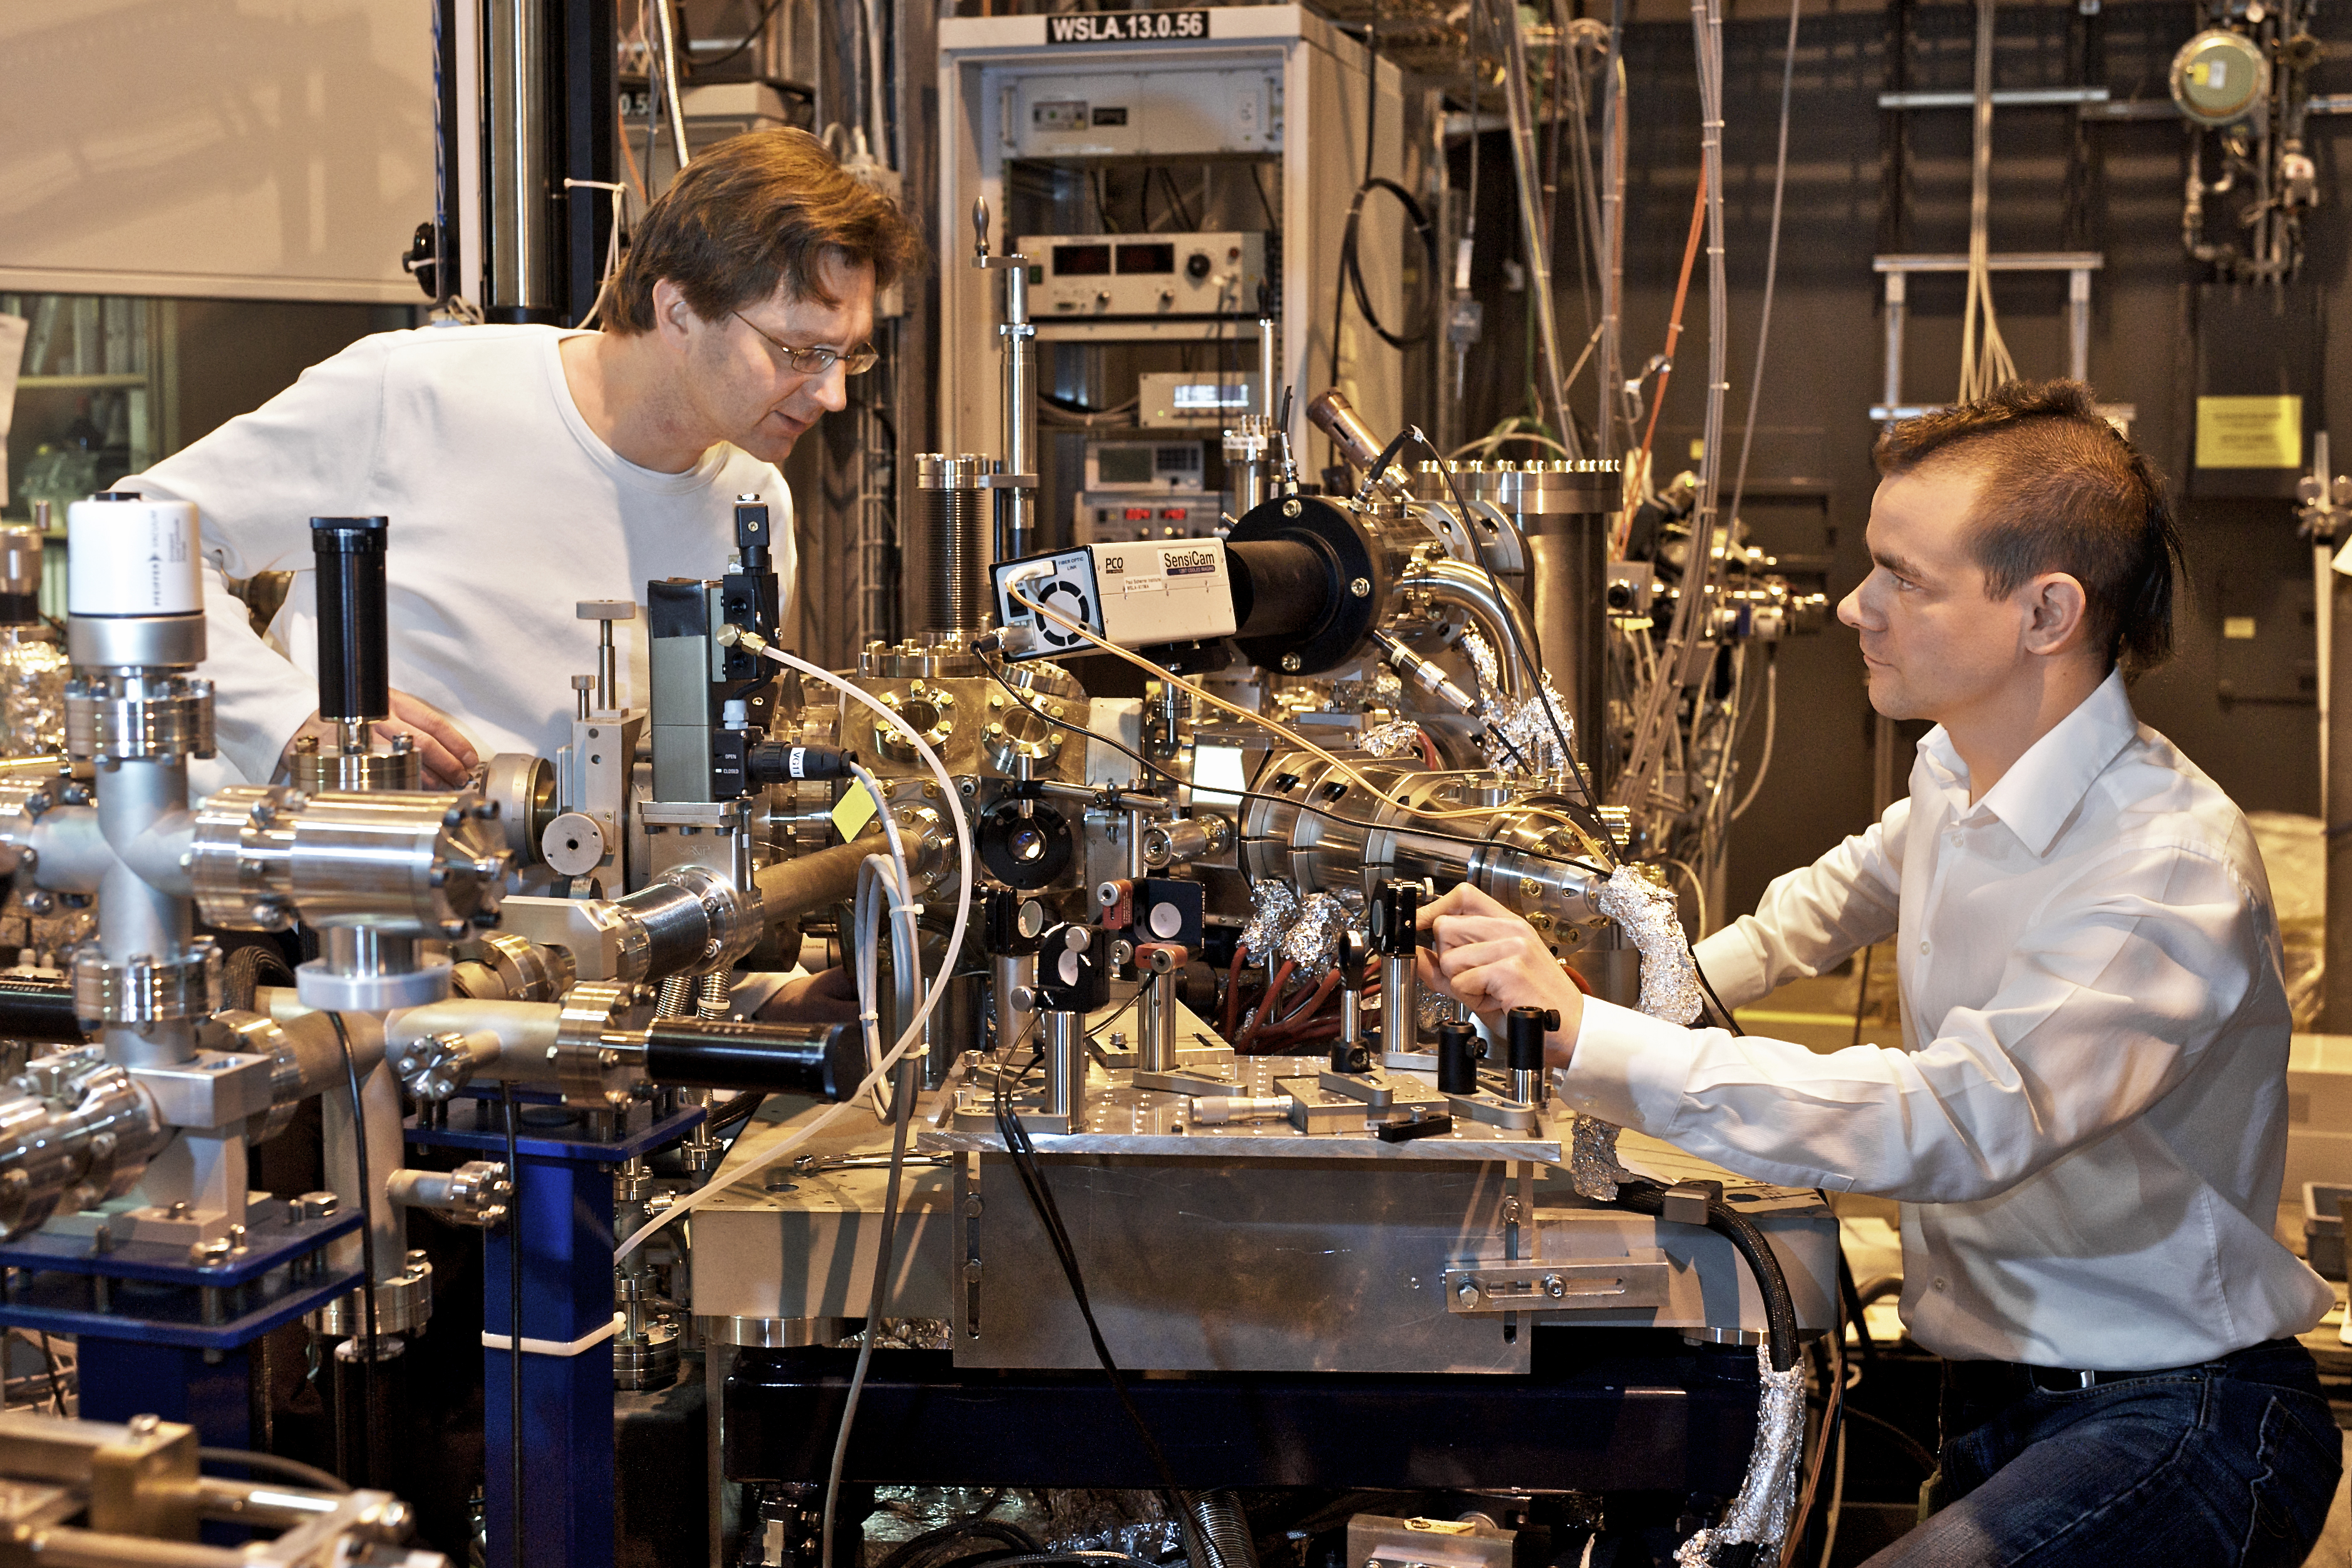 PSI researcher Frithjof Nolting (left) with first author of the study Loïc Le Guyader on the x-ray microscope at the Swiss Light Source, where the magnetic structures were depicted in temporal resolution. (Paul Scherrer Institute/M. Fischer)